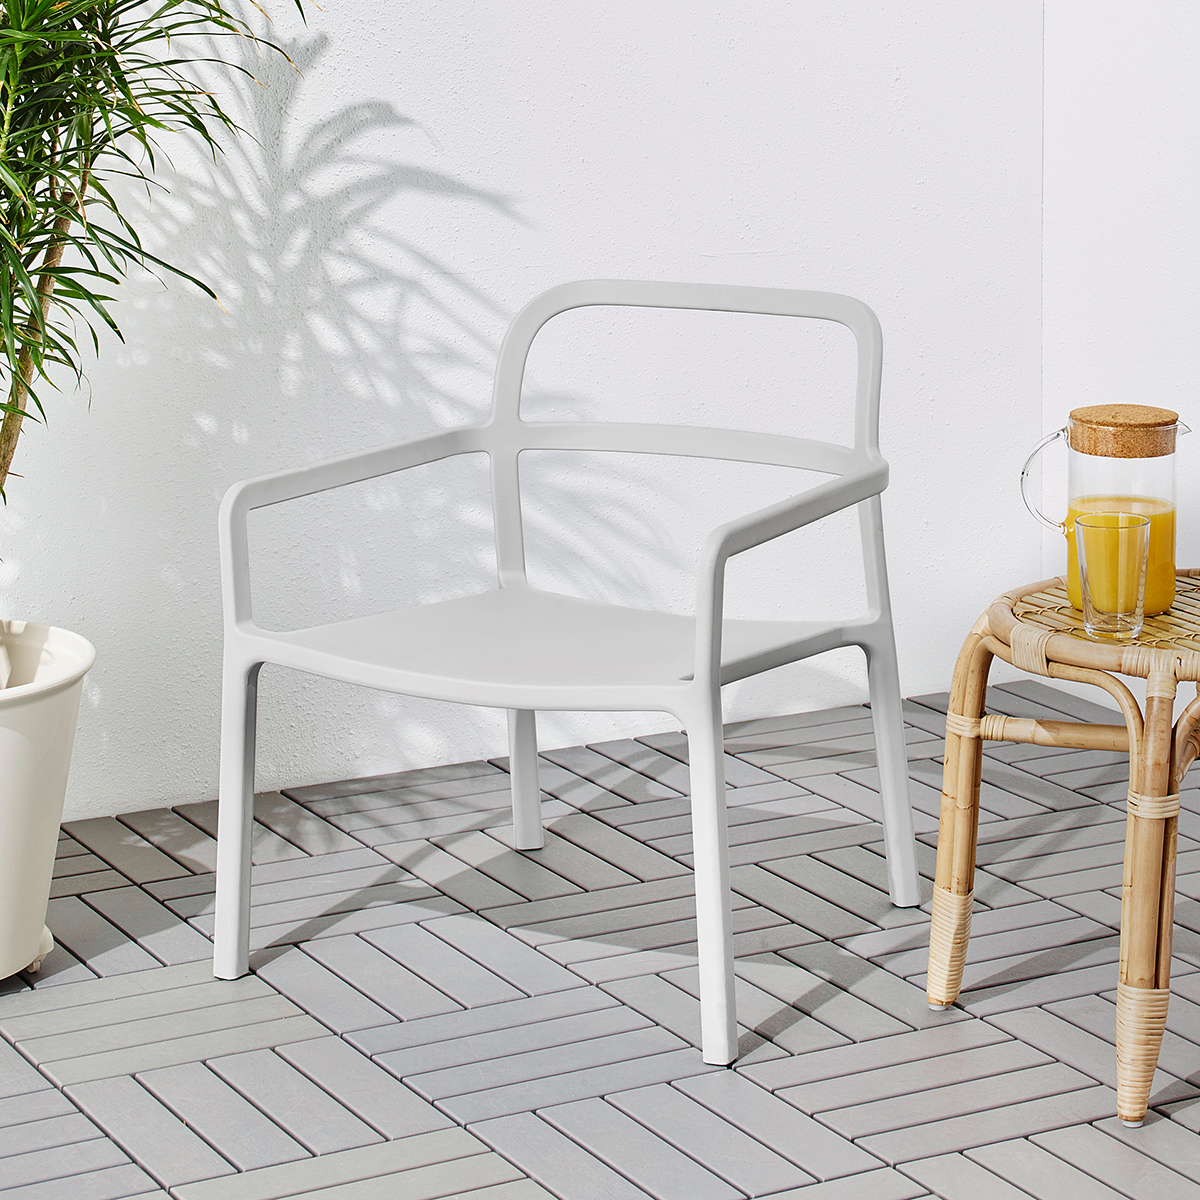 ikea furniture colors. Really, But It Looks Chic And Can Be Easily Stacked For Extra Seating. Comes In A Range Of Colors With Few Different Finishes. Ikea Furniture